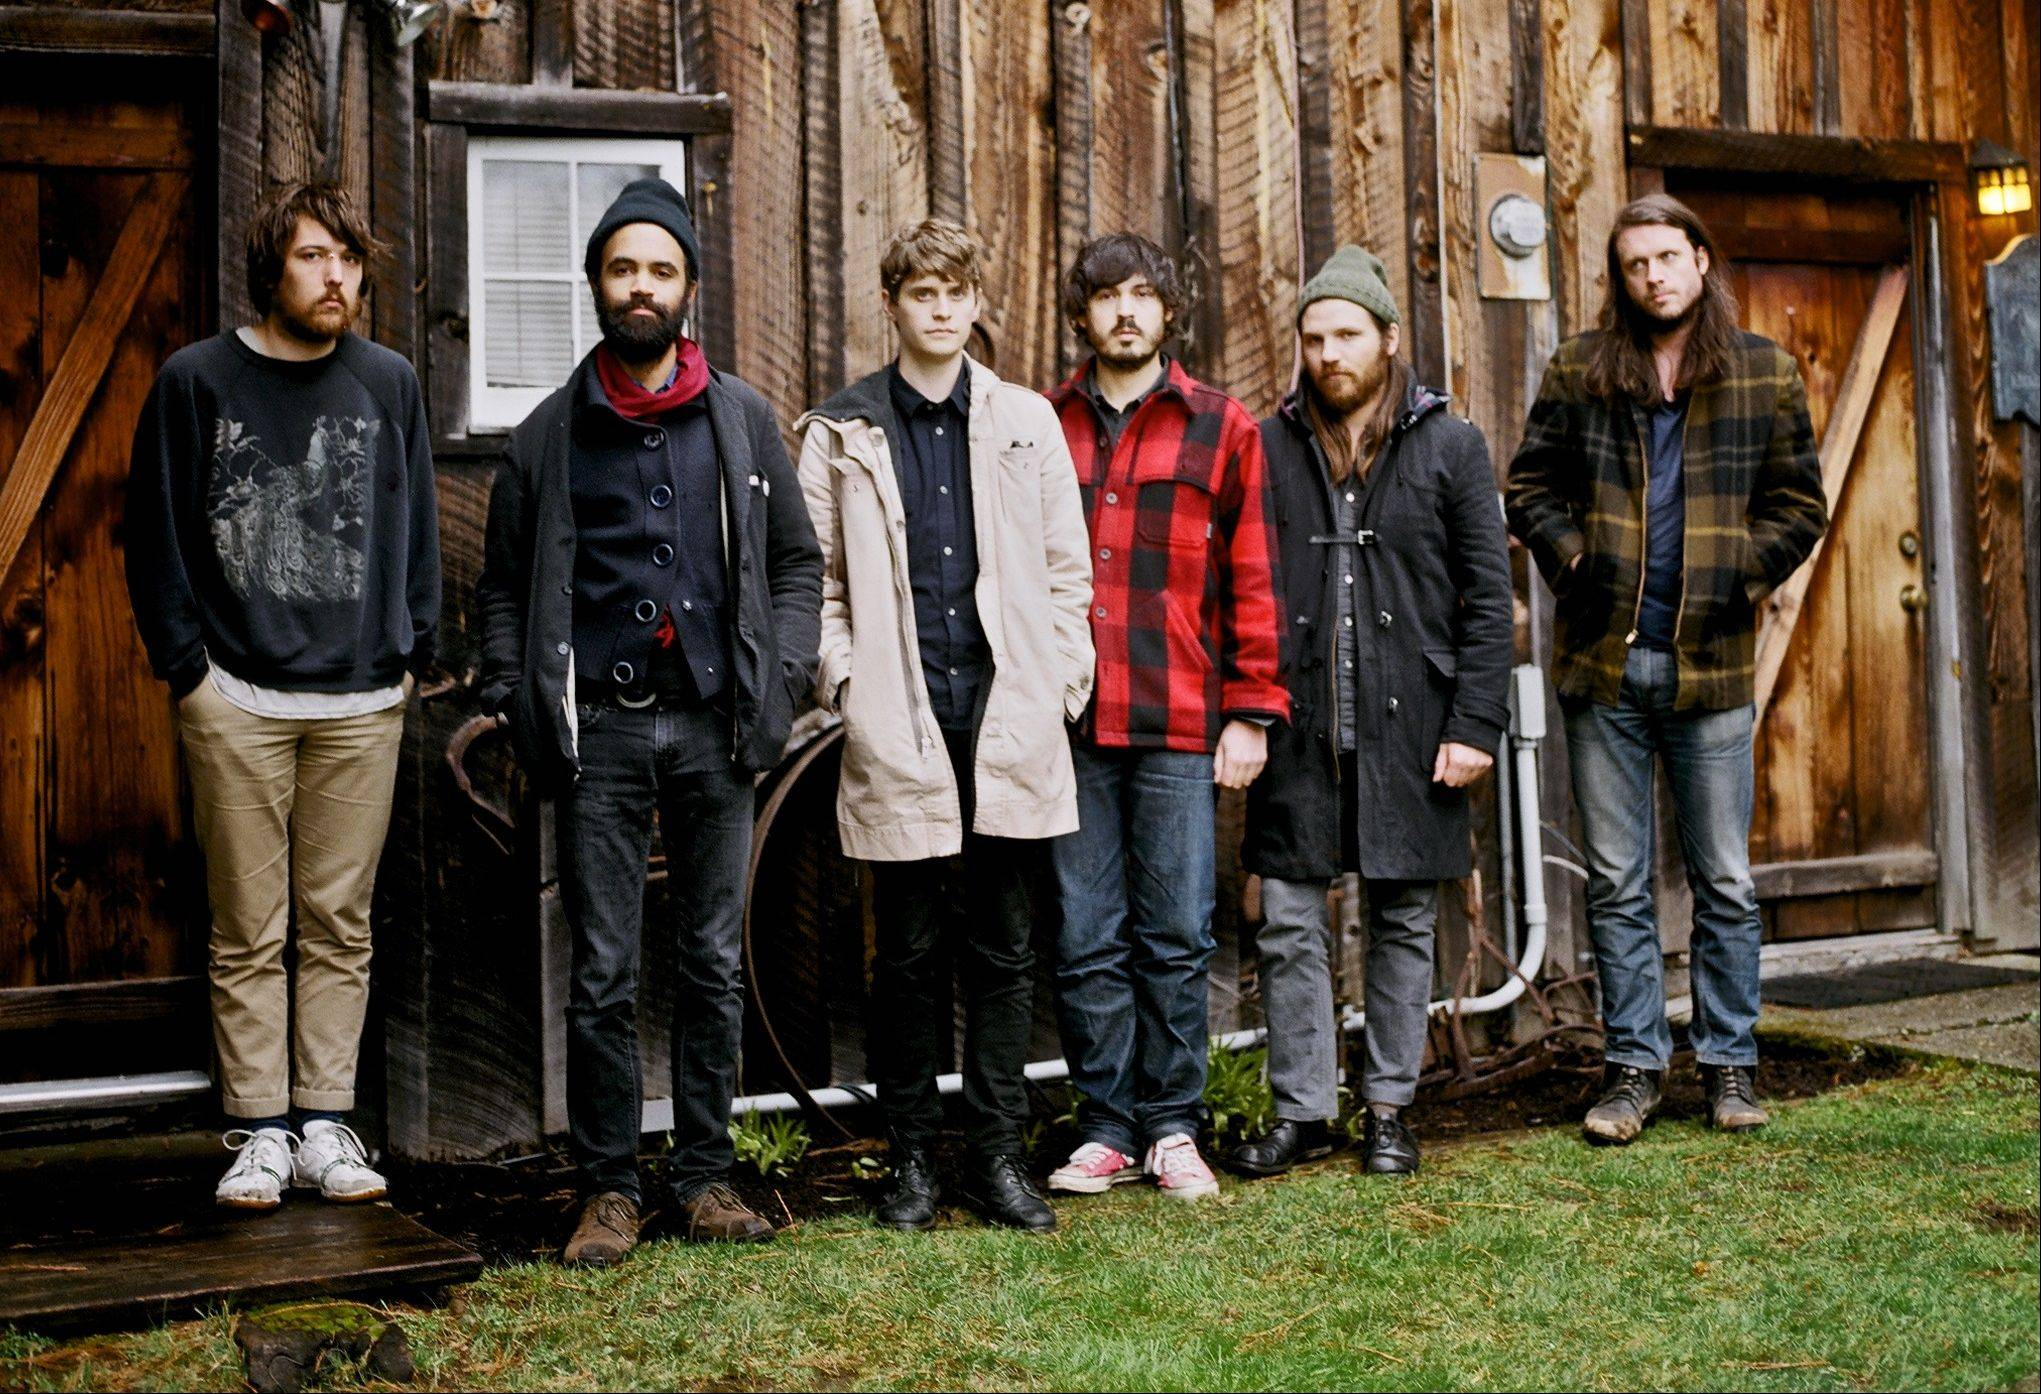 Fleet Foxes has added an extra show at the Chicago Theatre.